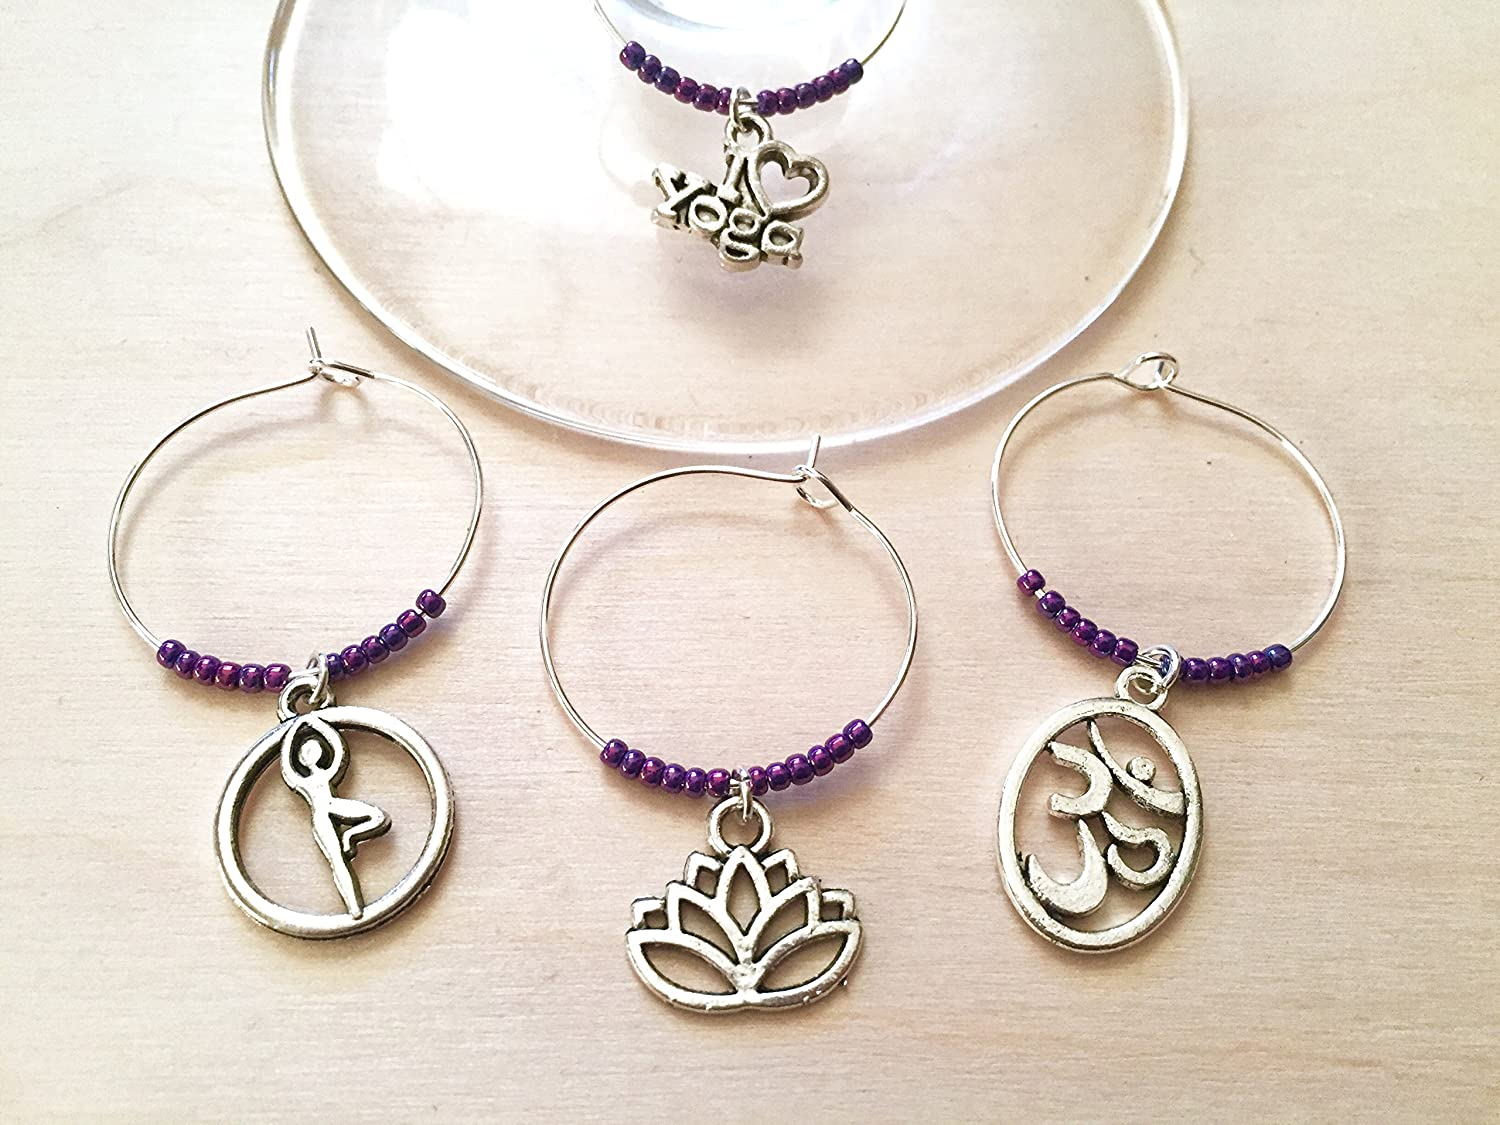 Yoga wine charms, I Love Yoga, Yoga gift, Namaste, Ohm, Lotus Flower, Tree Pose, PURPLE BEADS, Wine charm set.